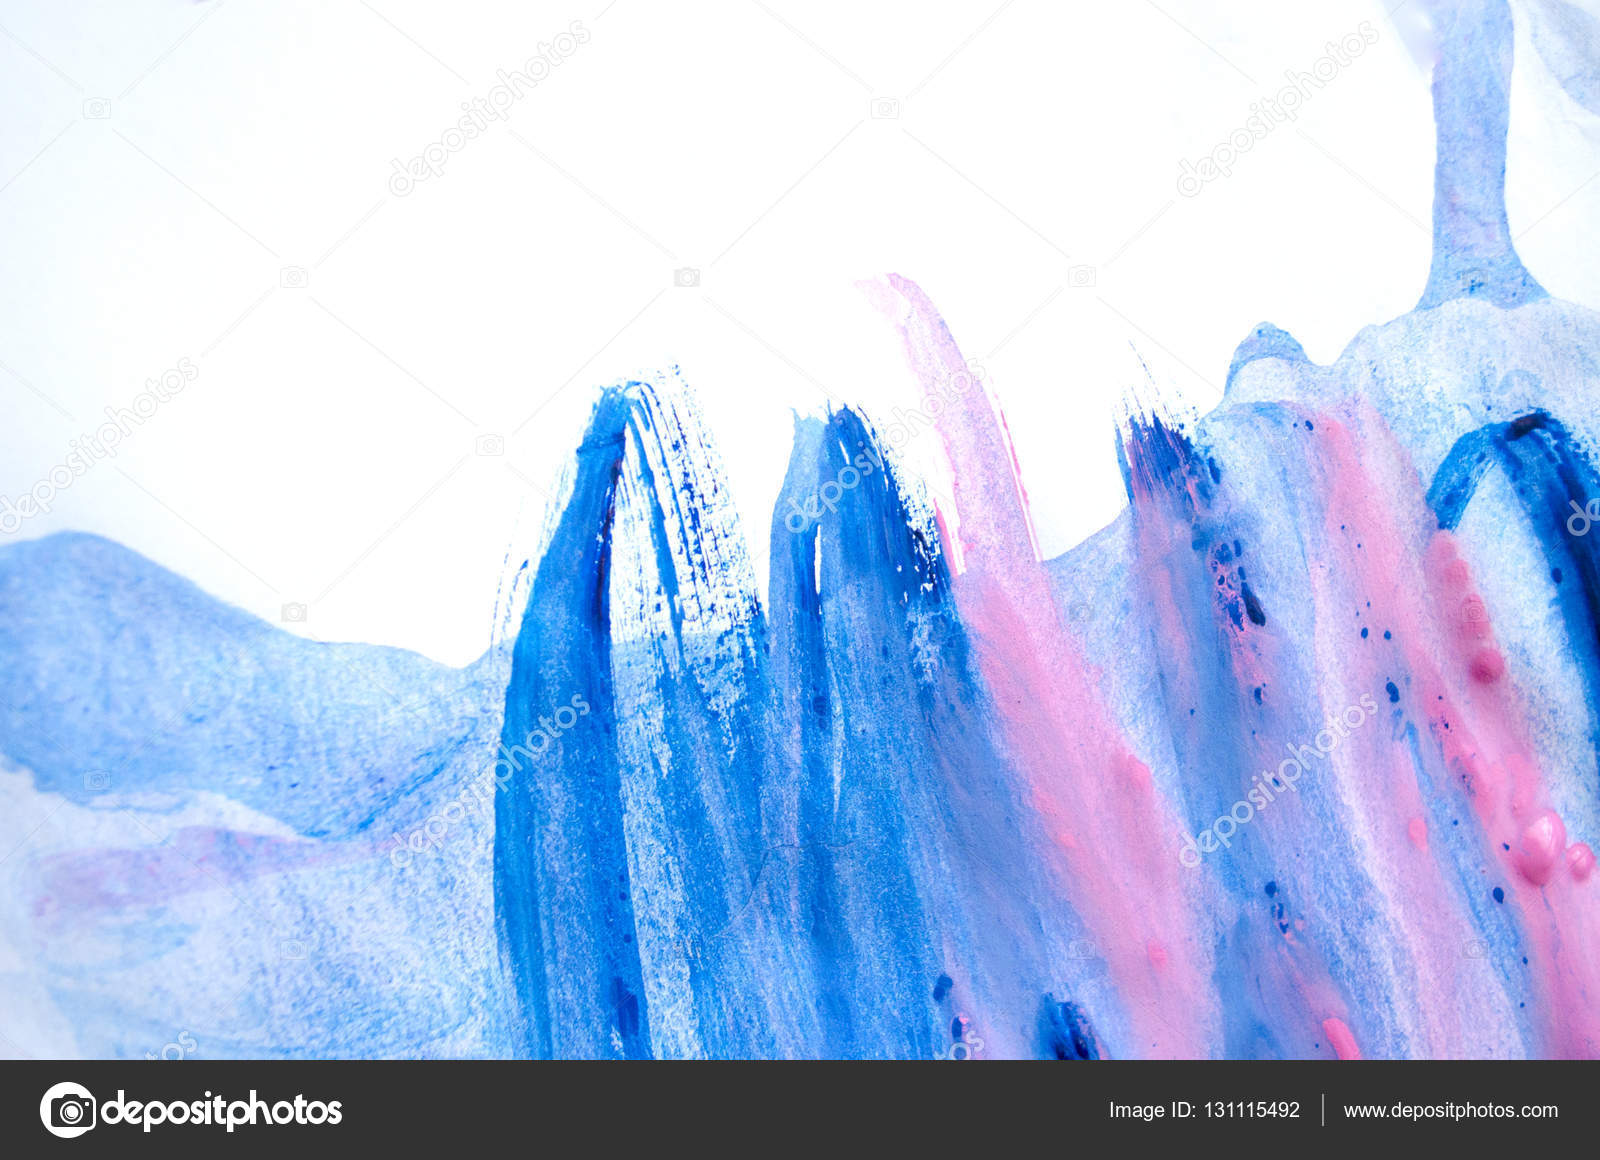 Abstract Painting Background Design - HD Wallpaper